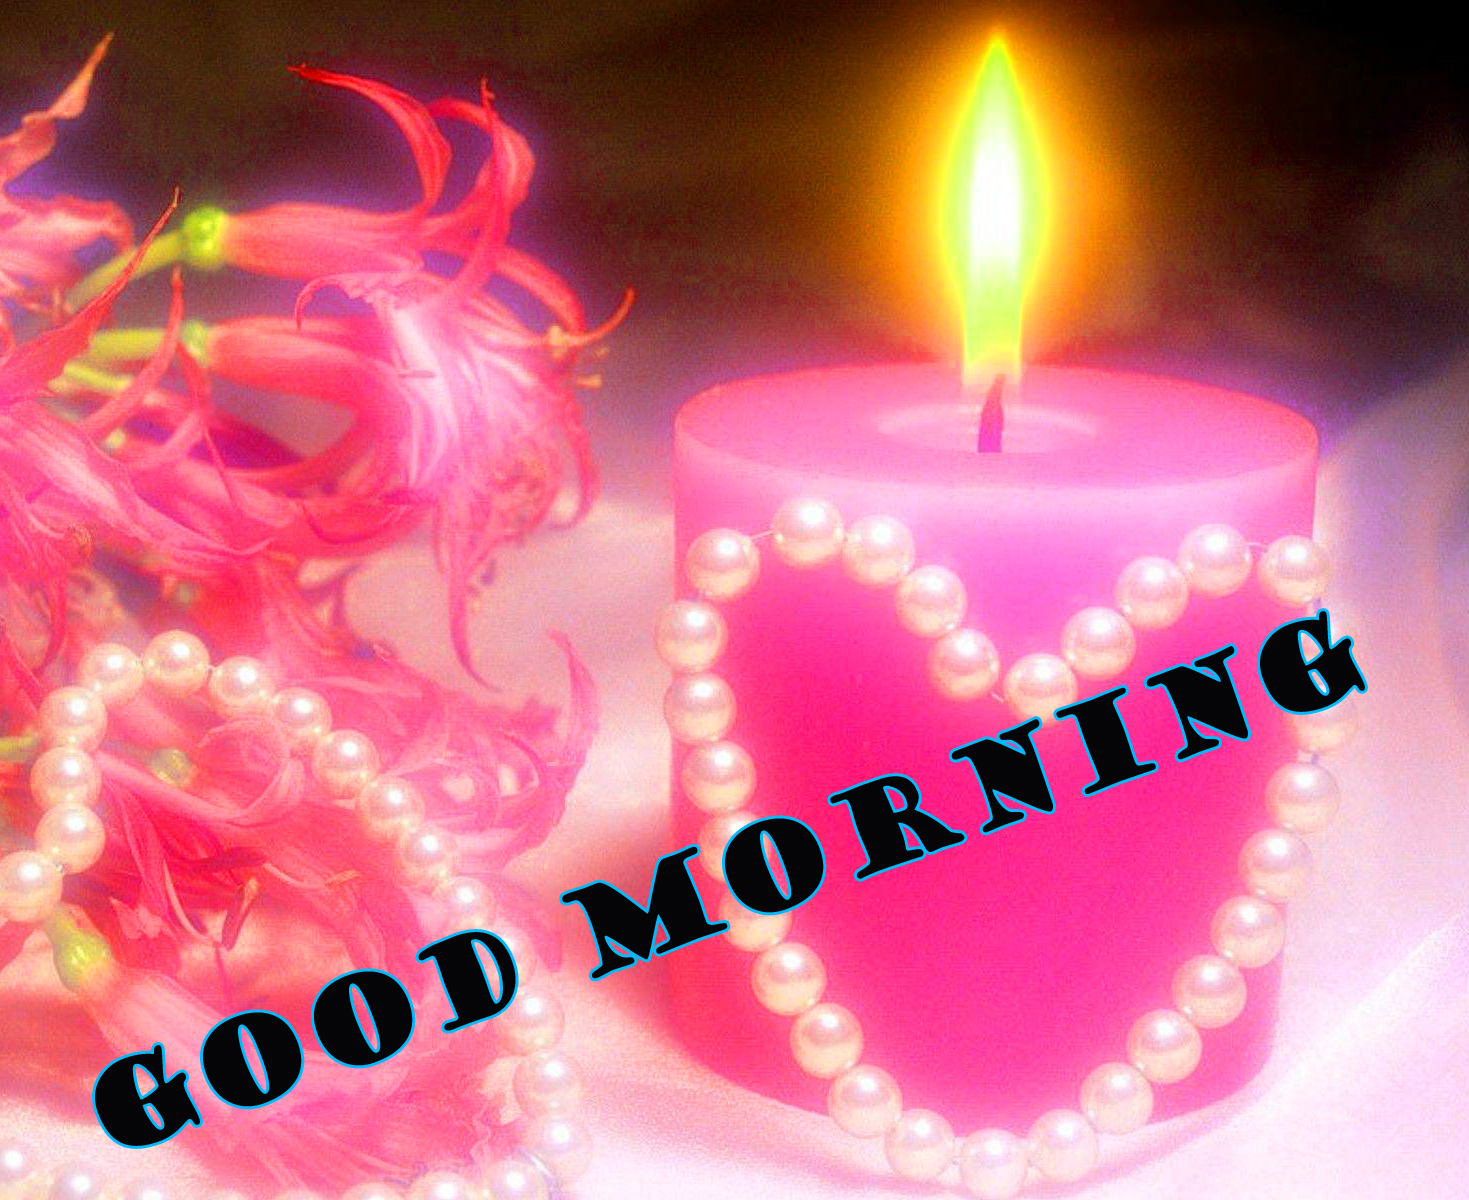 Special Wonderful Good Morning Images  Wallpaper Photo Pictures Pics Download